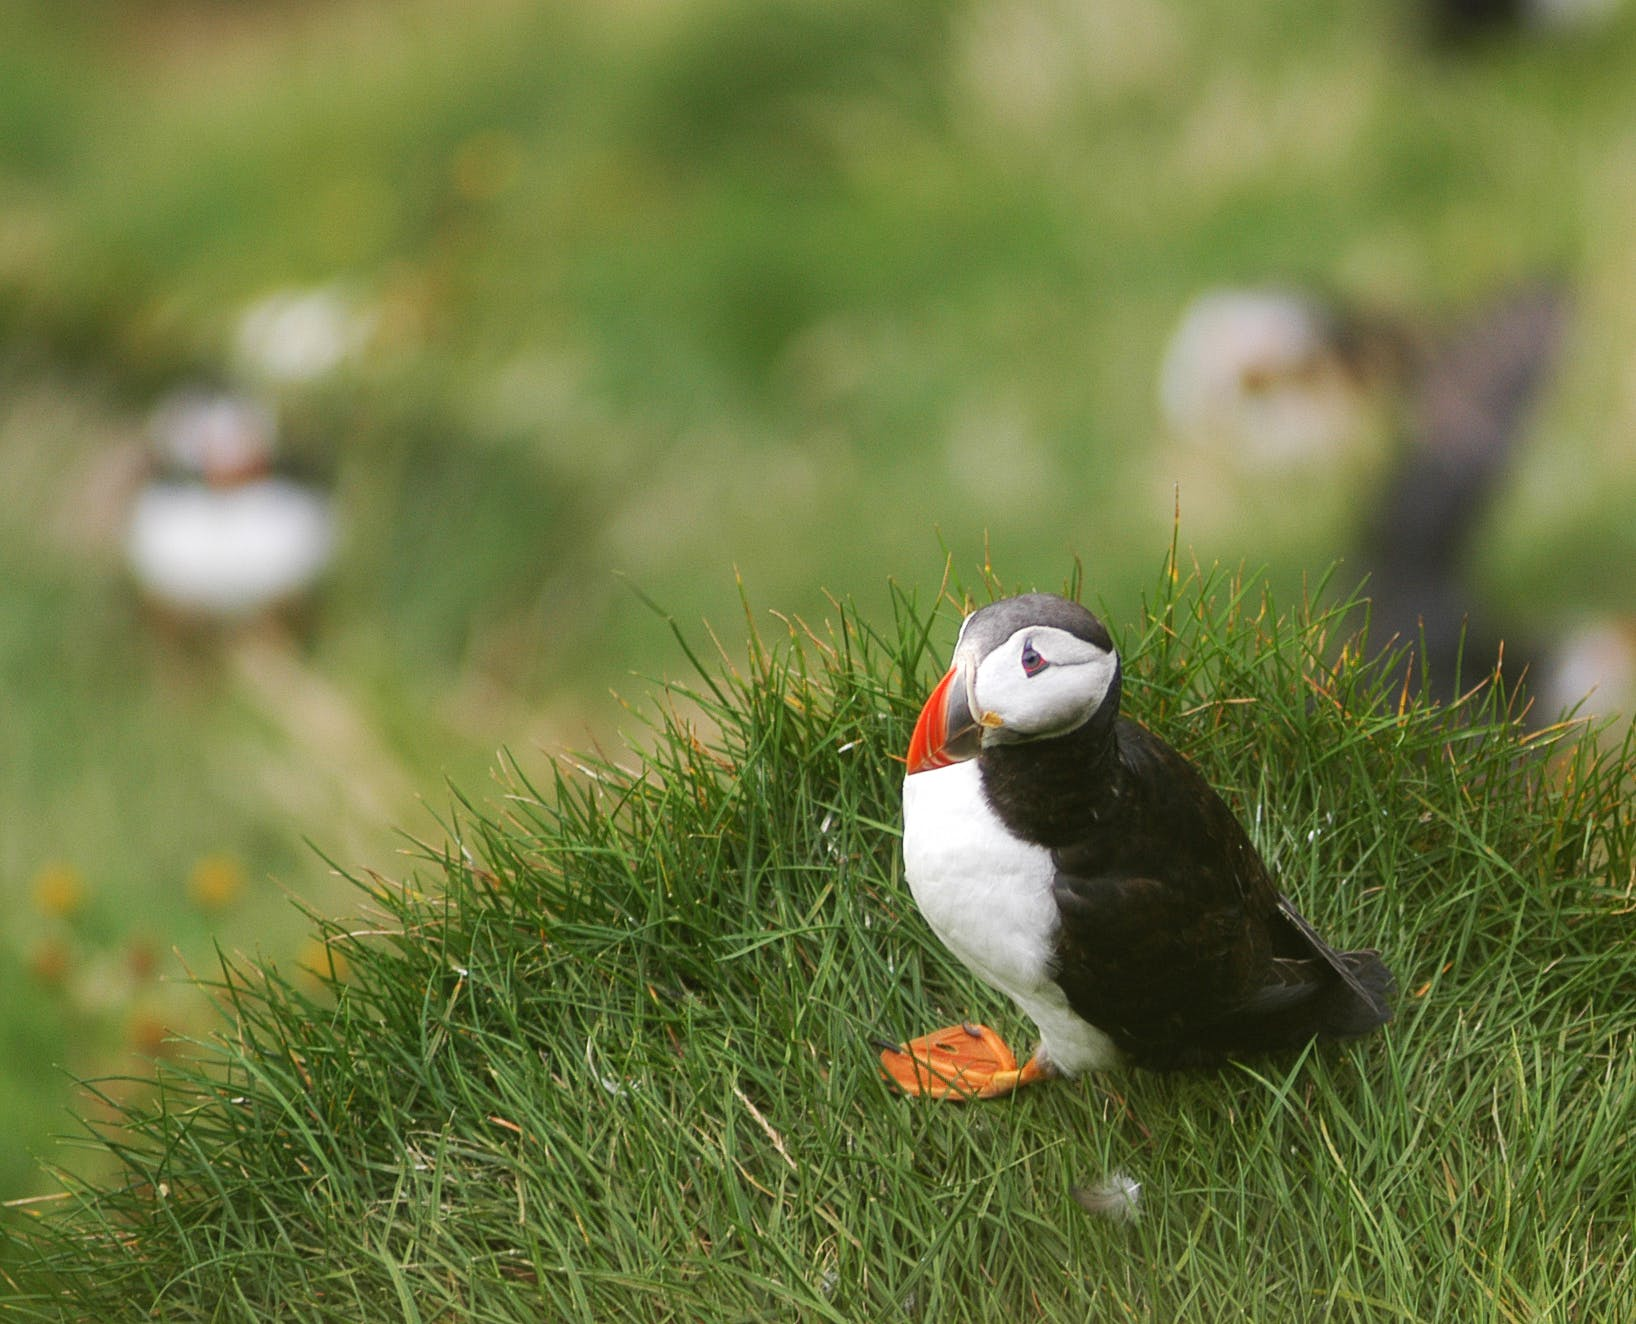 An adorable puffin in the wild.